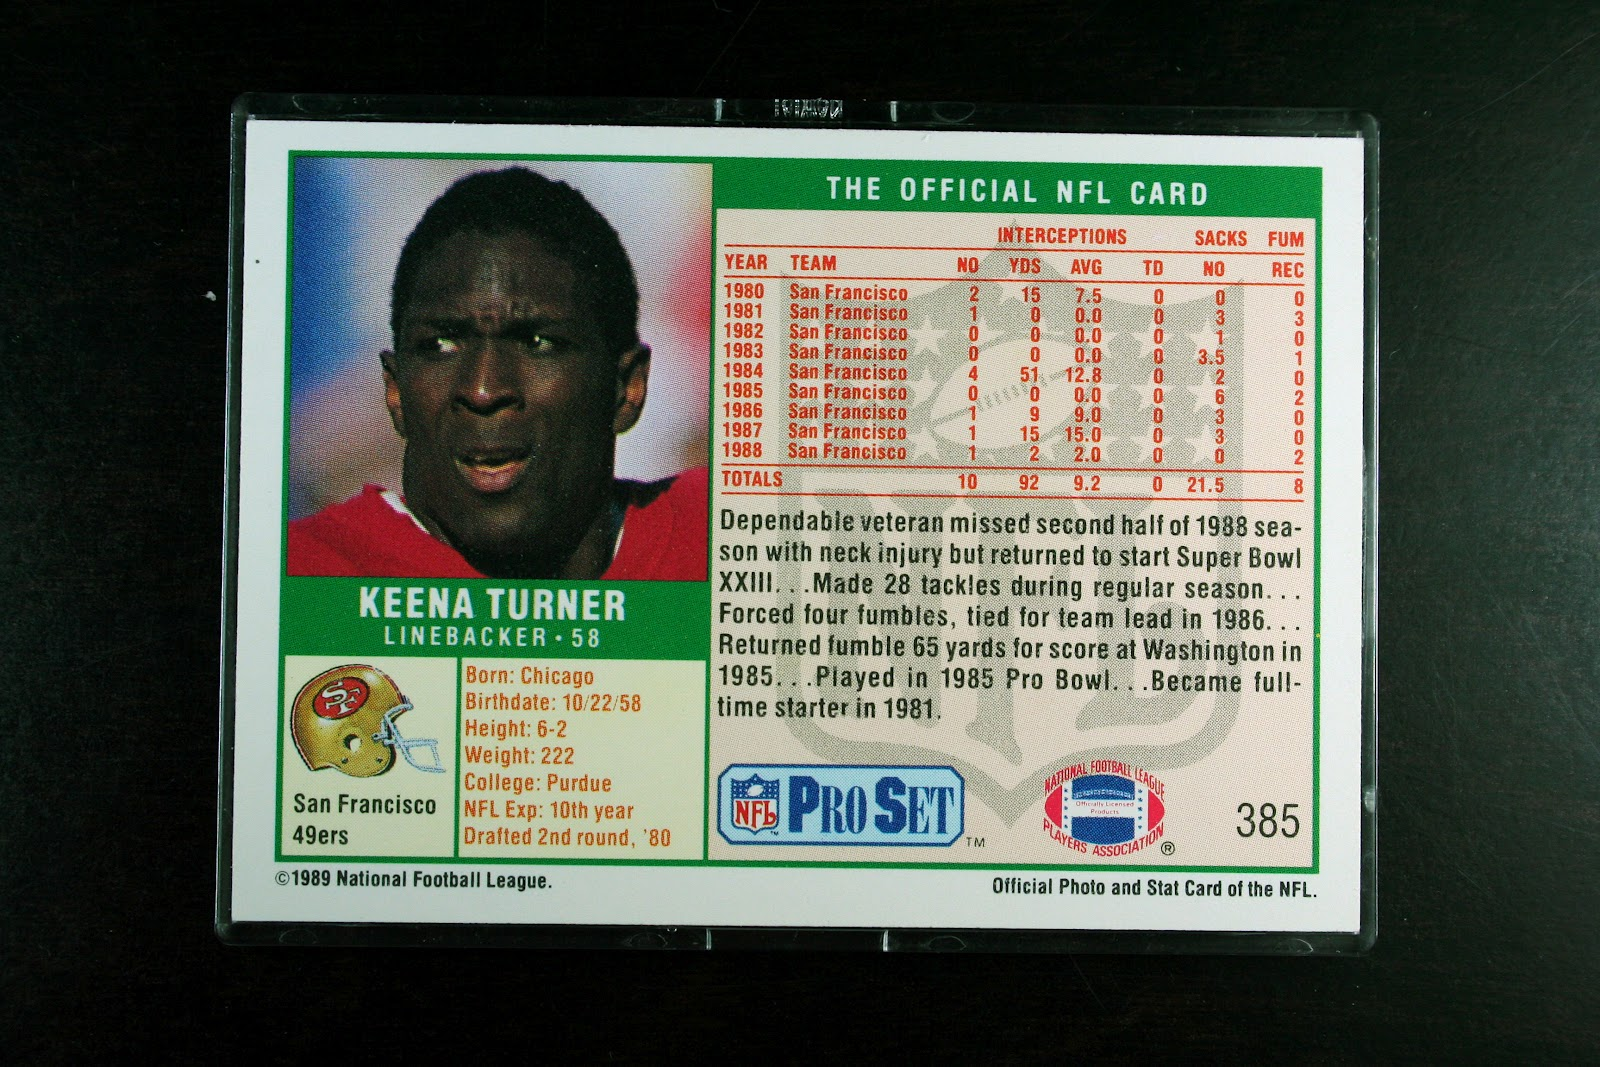 Drafted In The 2nd Round Of 1980 NFL Draft By Miami Dolphins Keena Turner Was Traded On That Same Day To San Francisco 49ers Where He Would Go